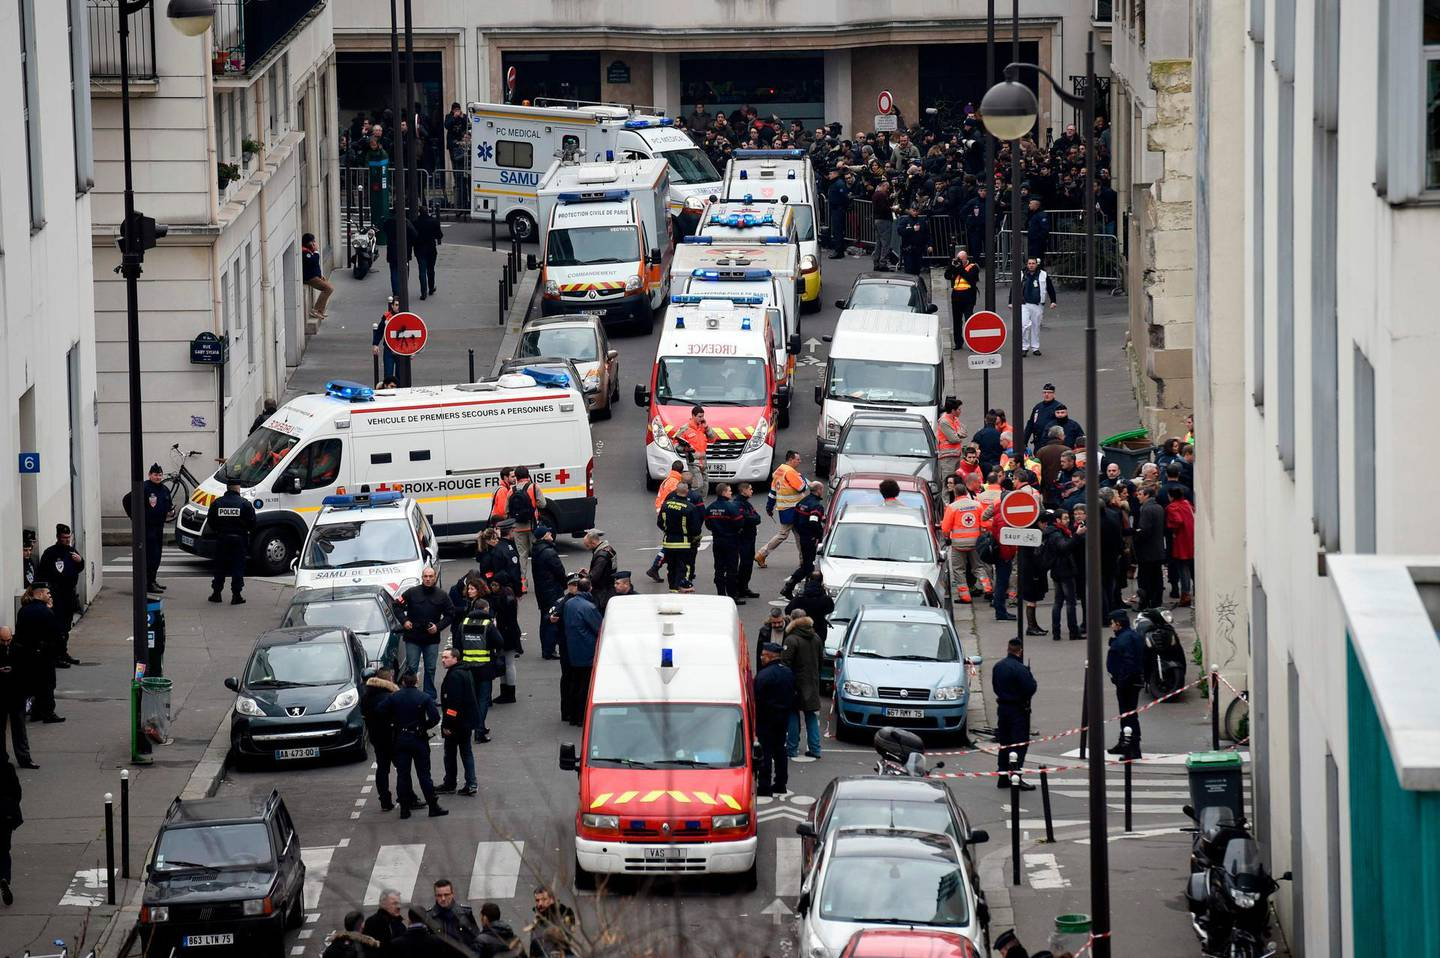 (FILES) This file photo taken on January 7, 2015 shows a general view of firefighters, police officers and forensics gathered in front of the offices of the French satirical newspaper Charlie Hebdo in Paris, after the brothers Kouachi stormed the offices leaving twelve dead.  The trial of the January 2015 attacks on Charlie Hebdo, Montrouge and Hyper Cacher will take place from September 2 to November 10, 2020 in Paris. / AFP / Martin BUREAU